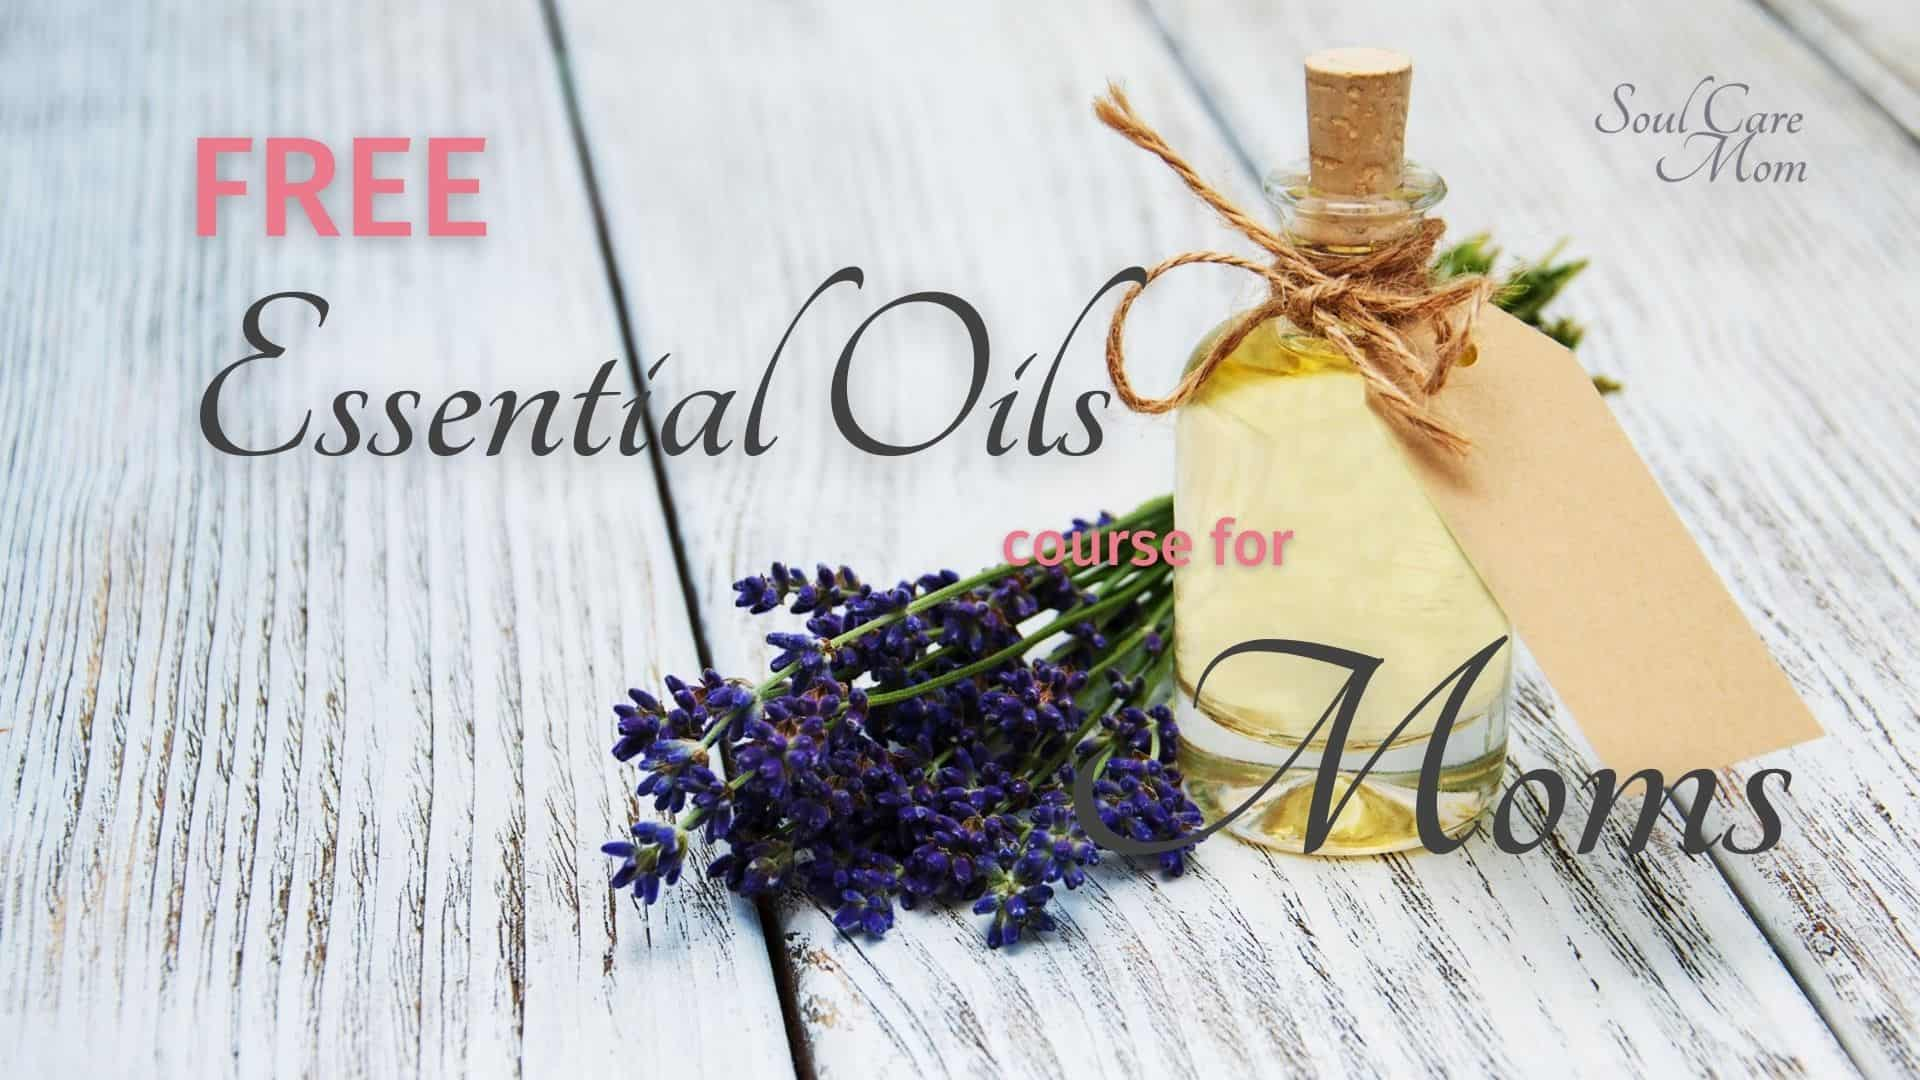 FREE Essential Oils Course for Moms